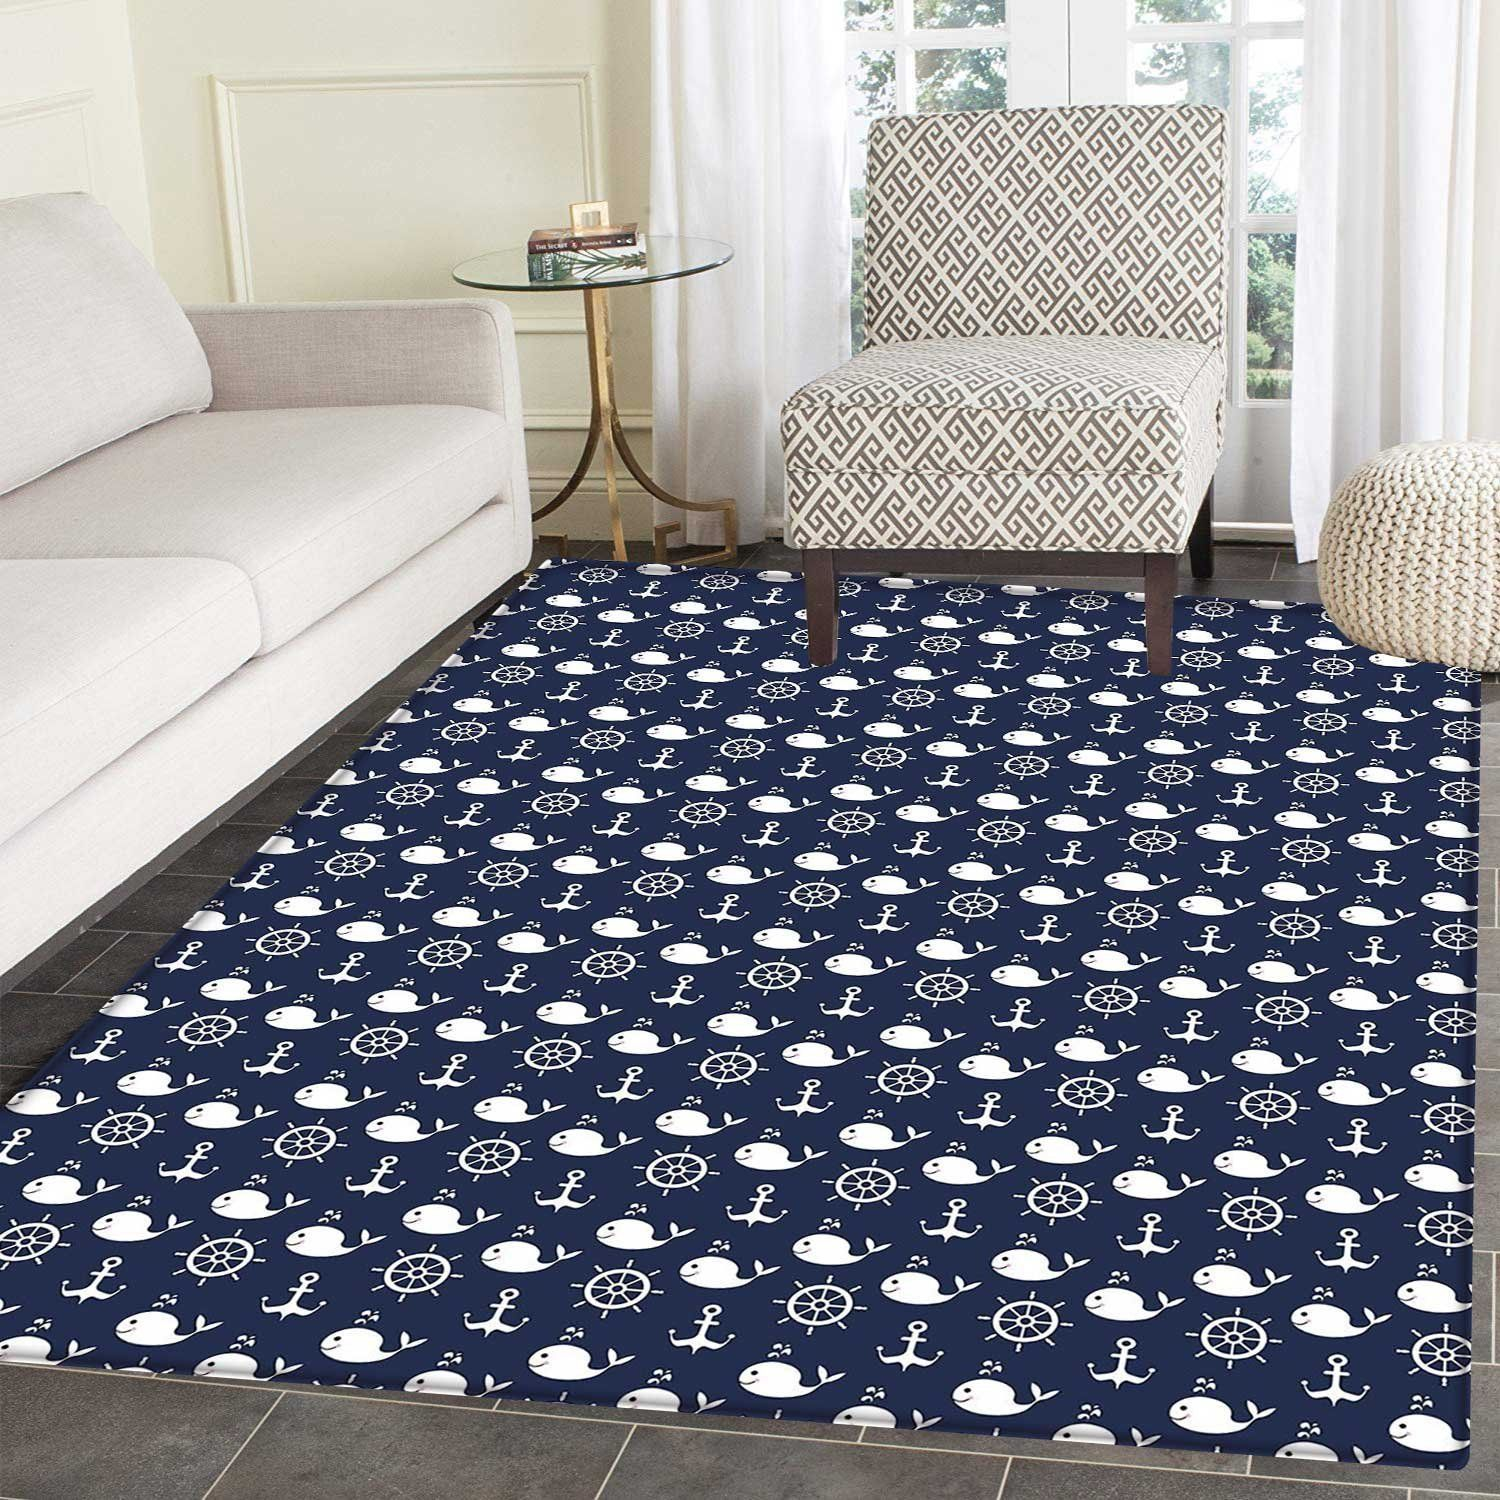 75 Whale Rugs And Whale Area Rugs 2020 Nautical Rugs Rugs